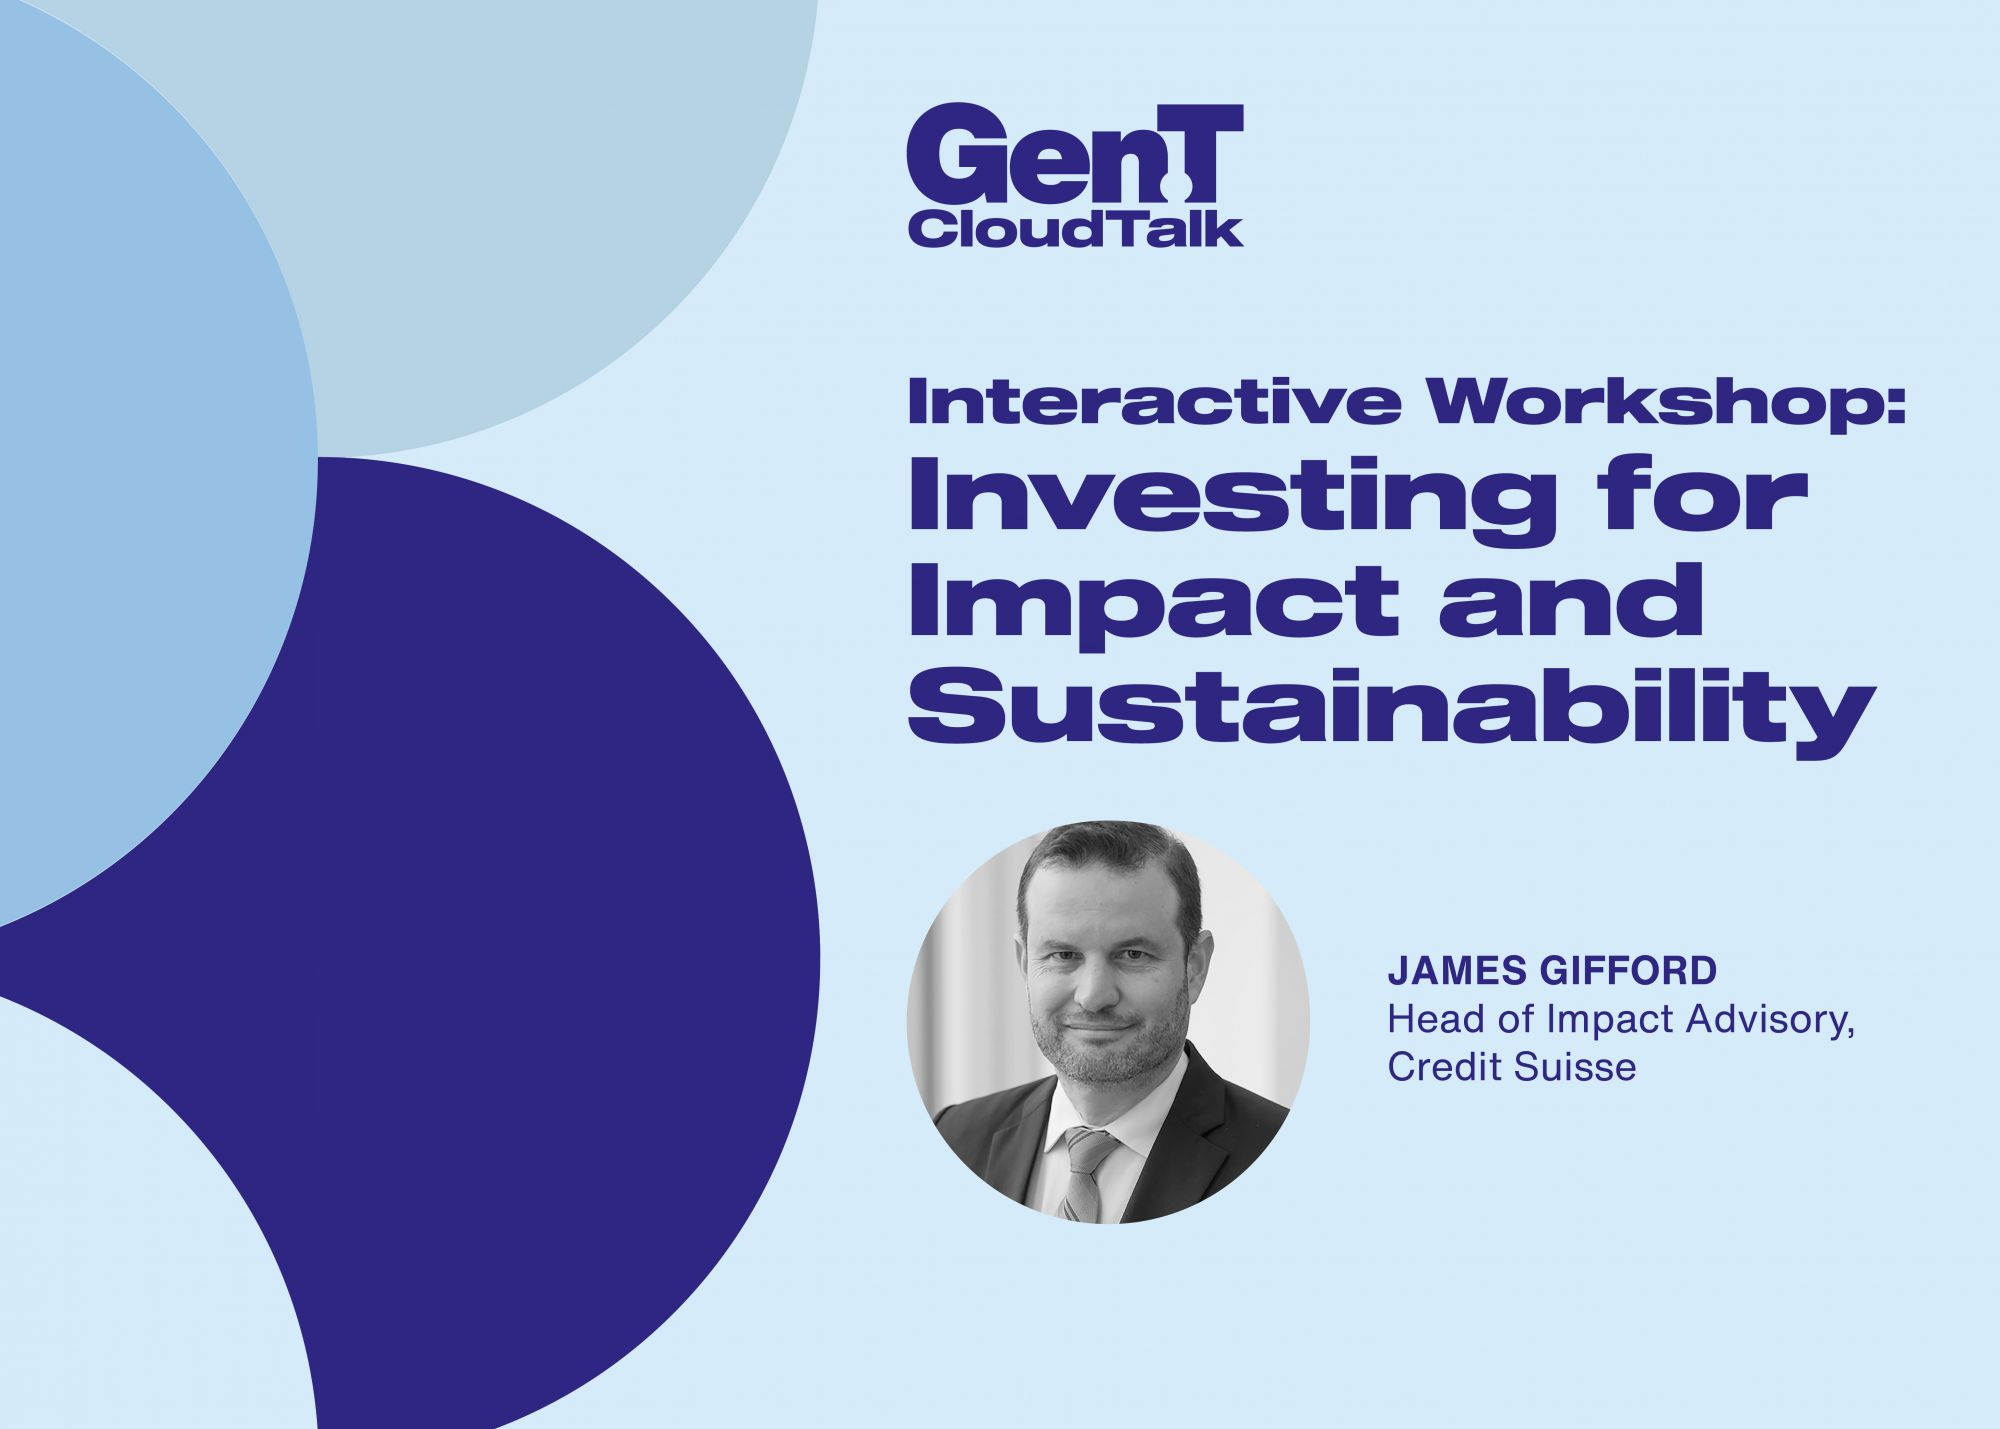 Cloud Talk: Investing For Impact And Sustainability